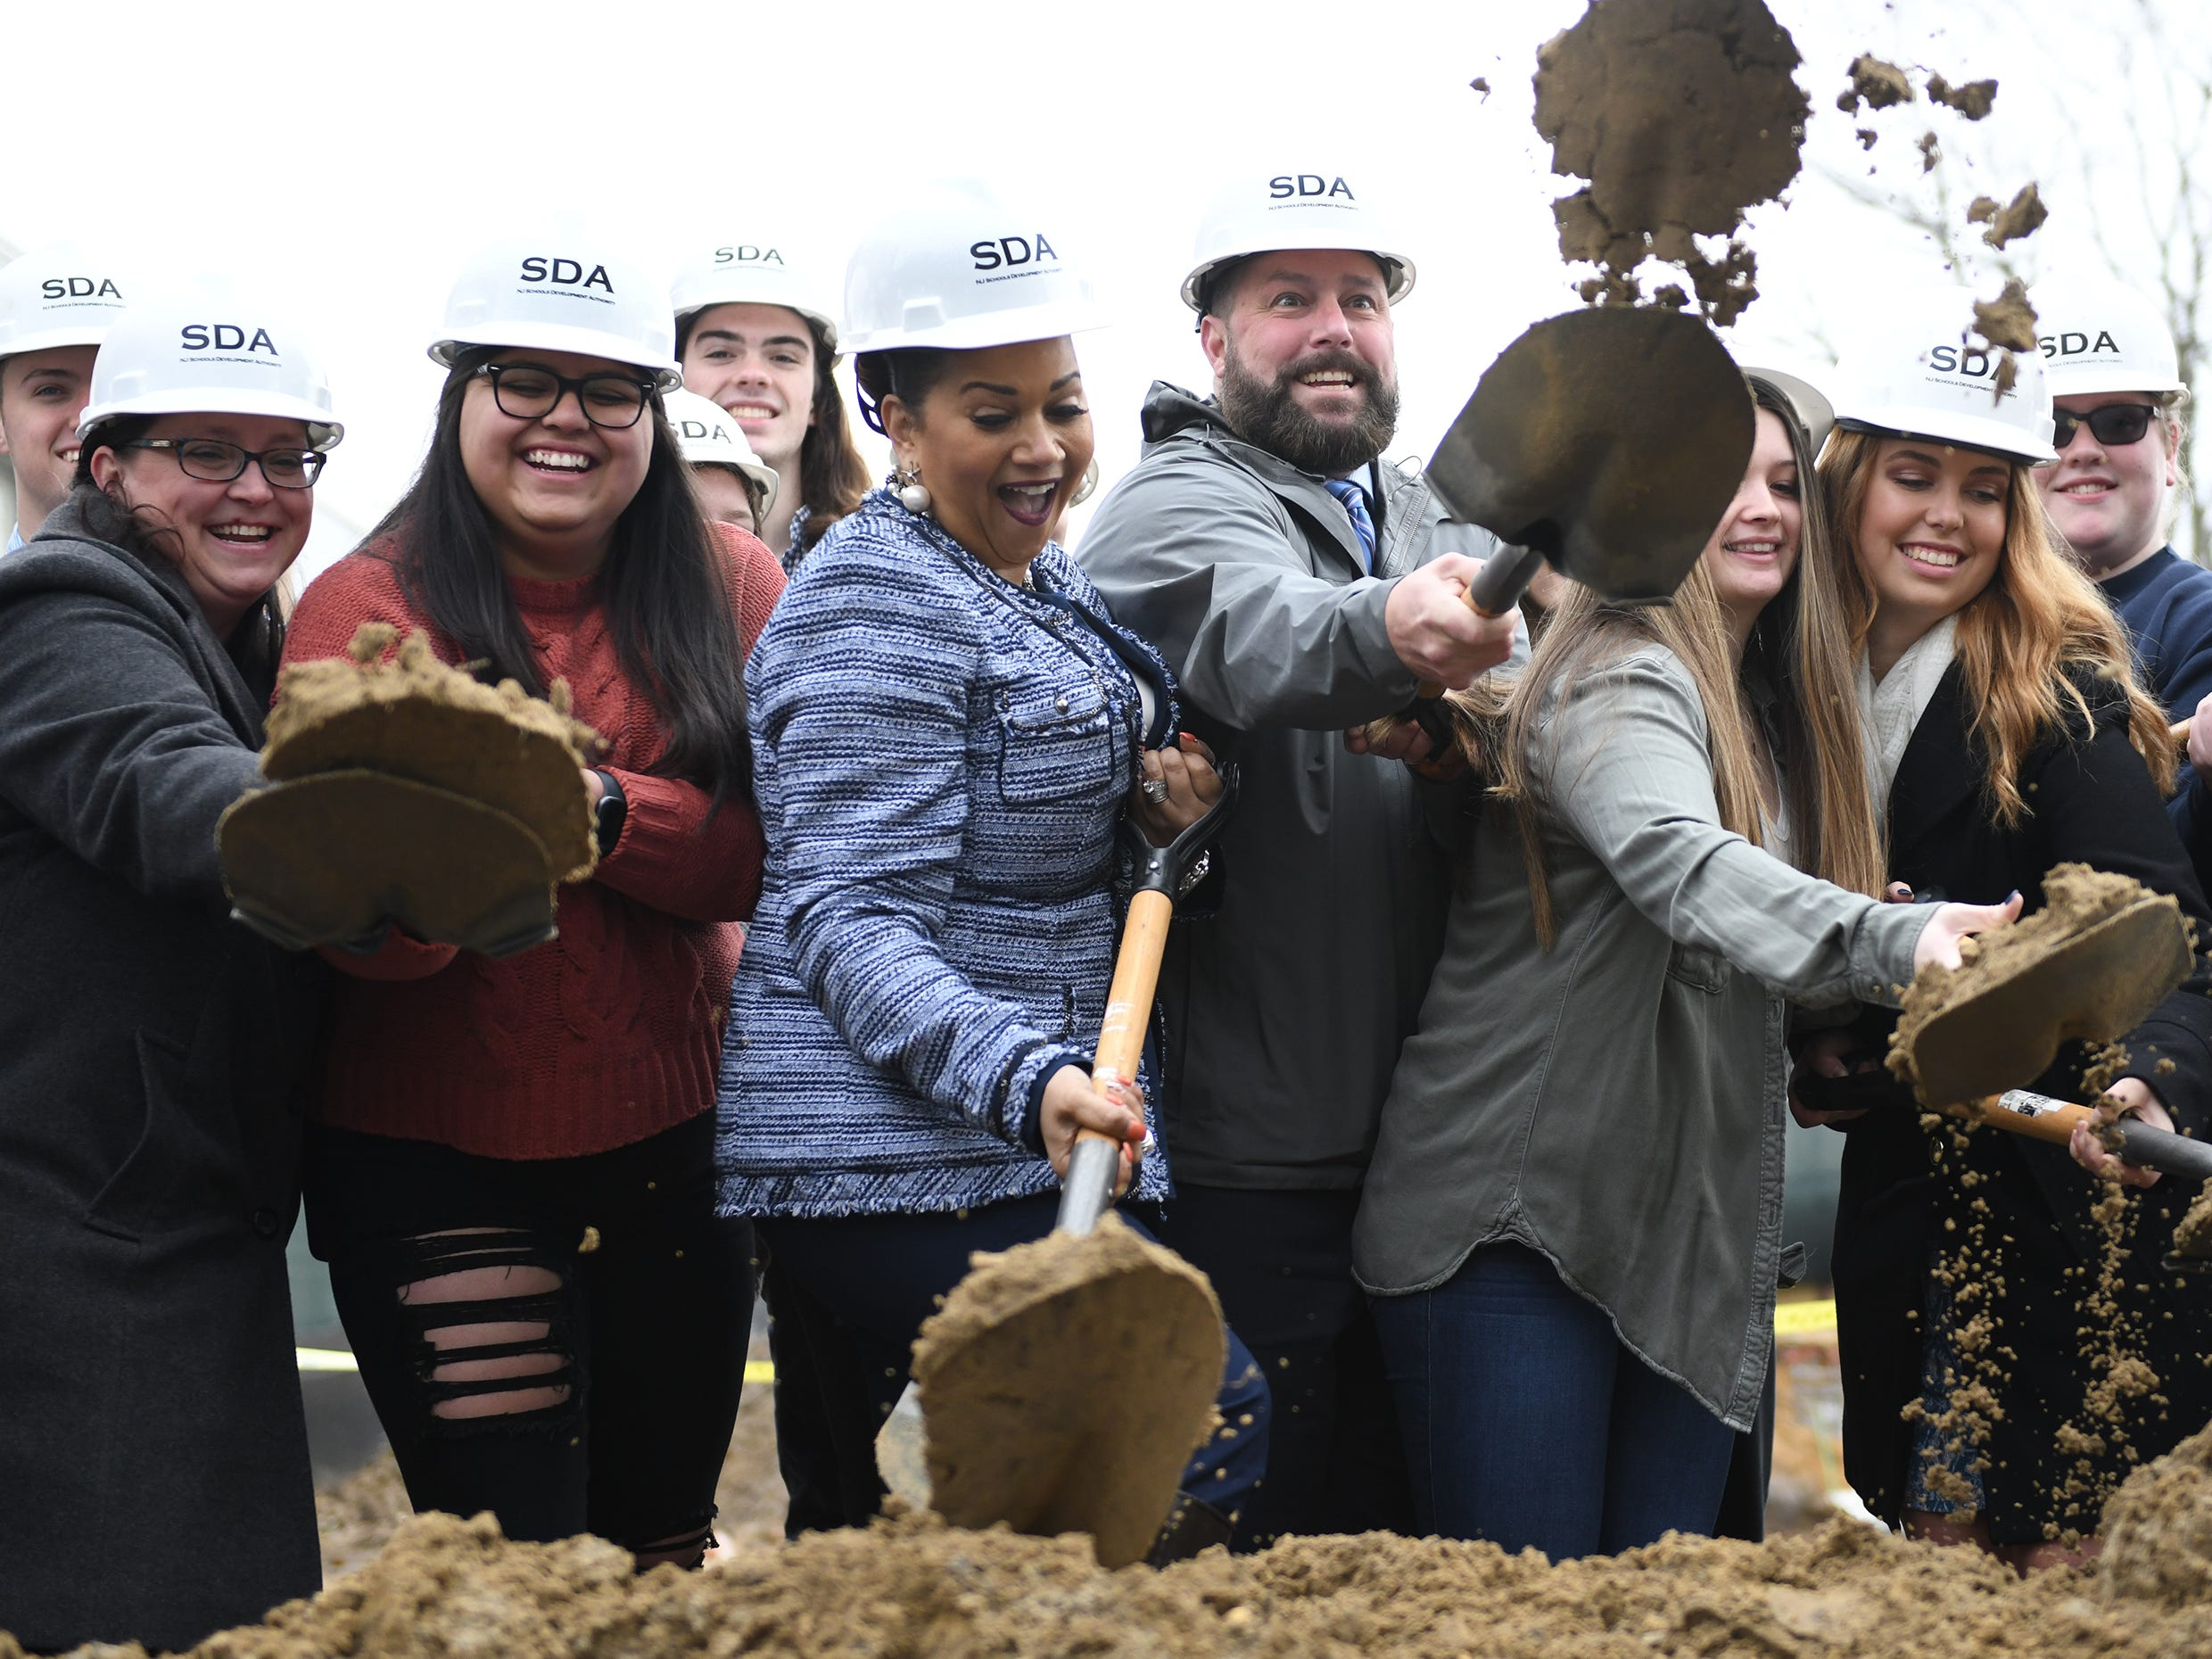 The New Jersey Schools Development Authority, joined by students, legislative representatives and school officials, hosted a groundbreaking event to kick off construction of the addition to Millville High School on Thursday, Feb. 7, 2019.